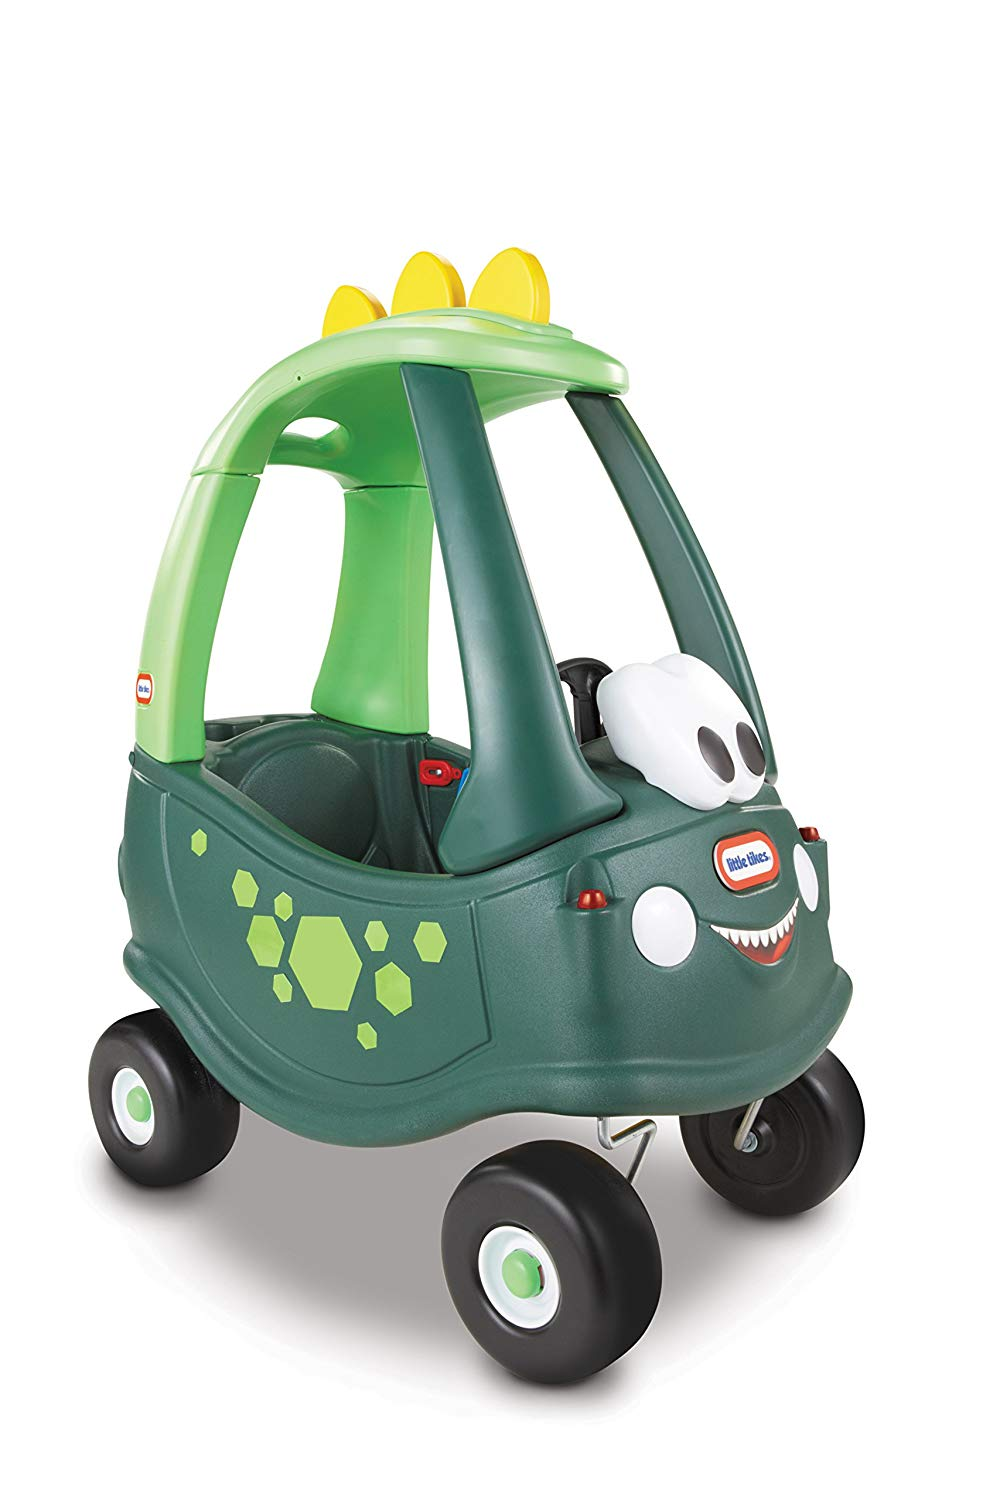 4. Little Tikes Cozy Coupe Dino